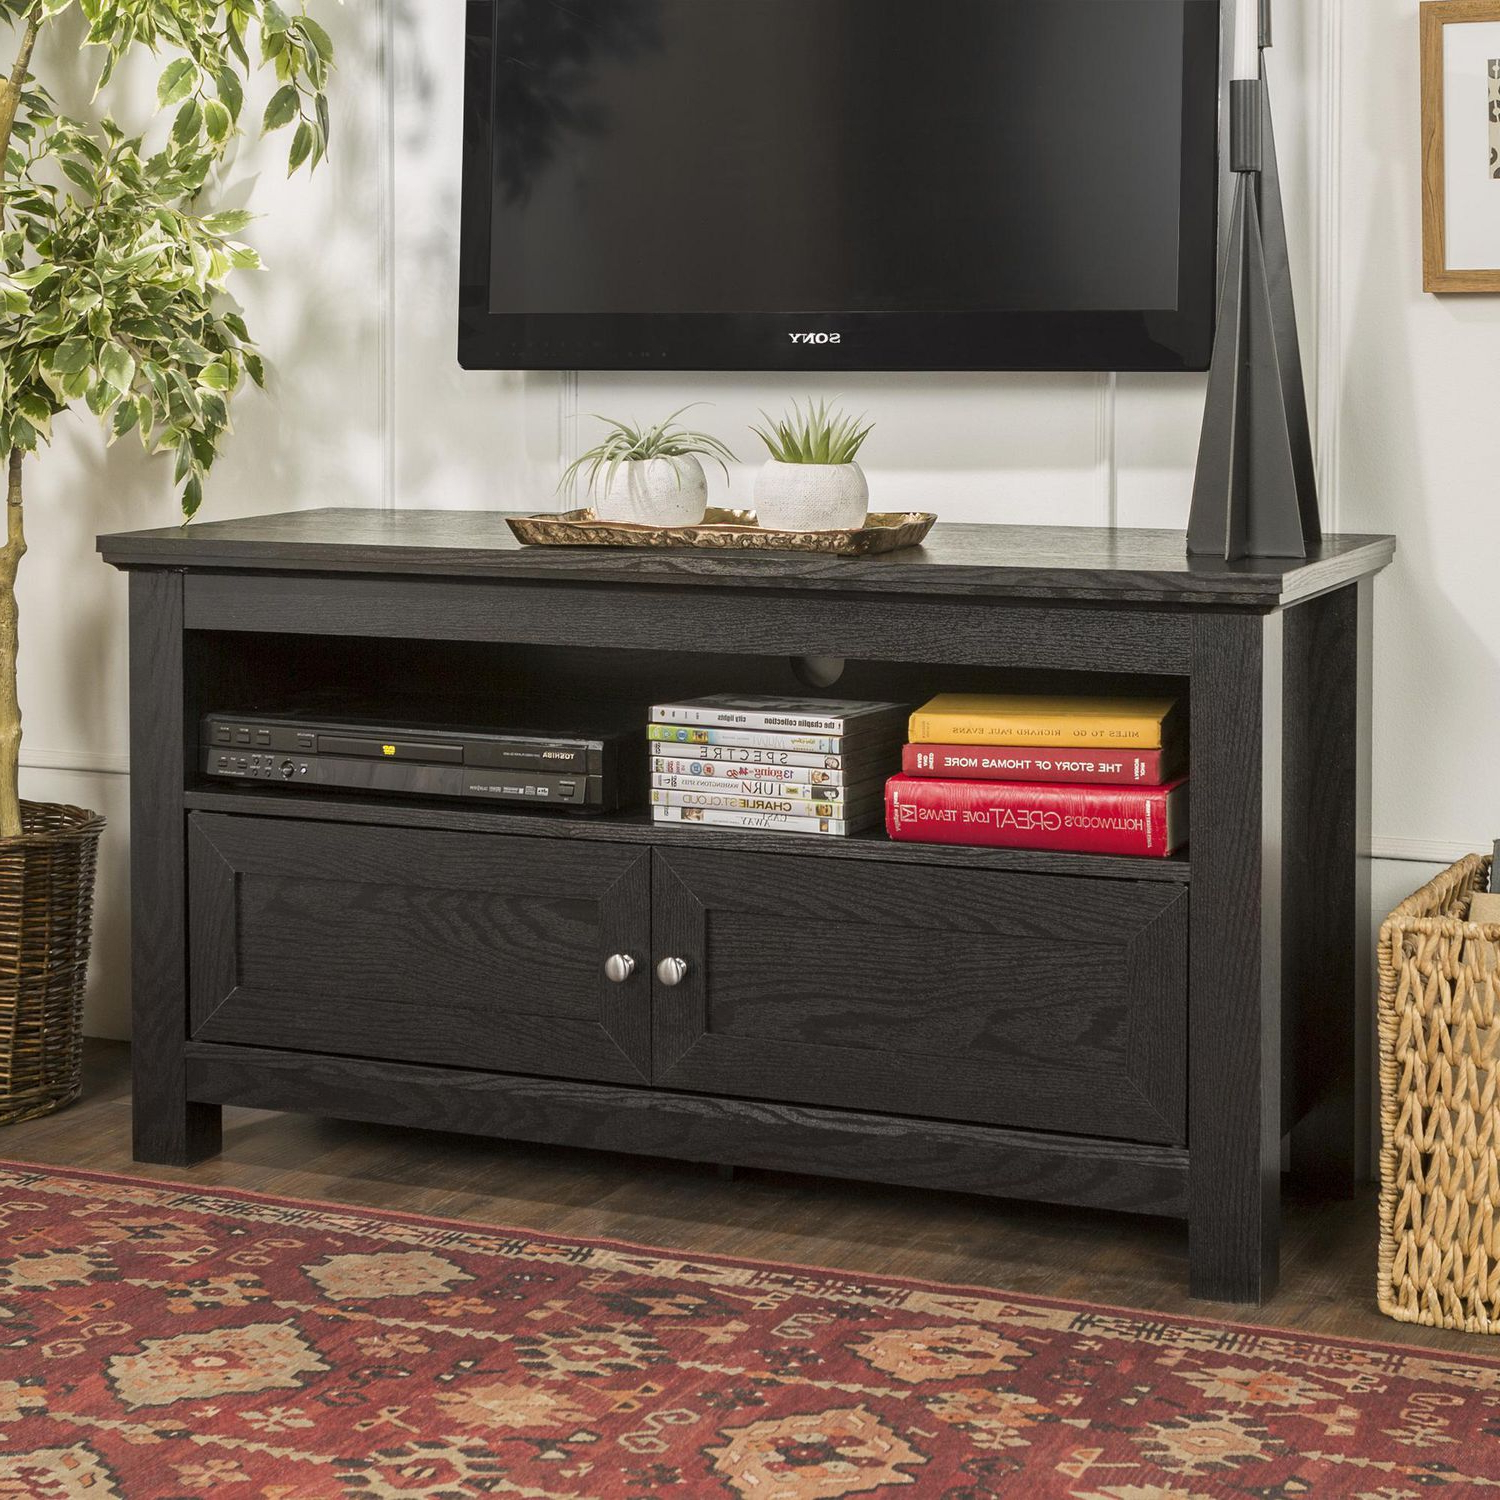 Manor Park Simple Rustic Tv Stand For Tv's Up To 48 For Widely Used Urban Rustic Tv Stands (View 3 of 10)